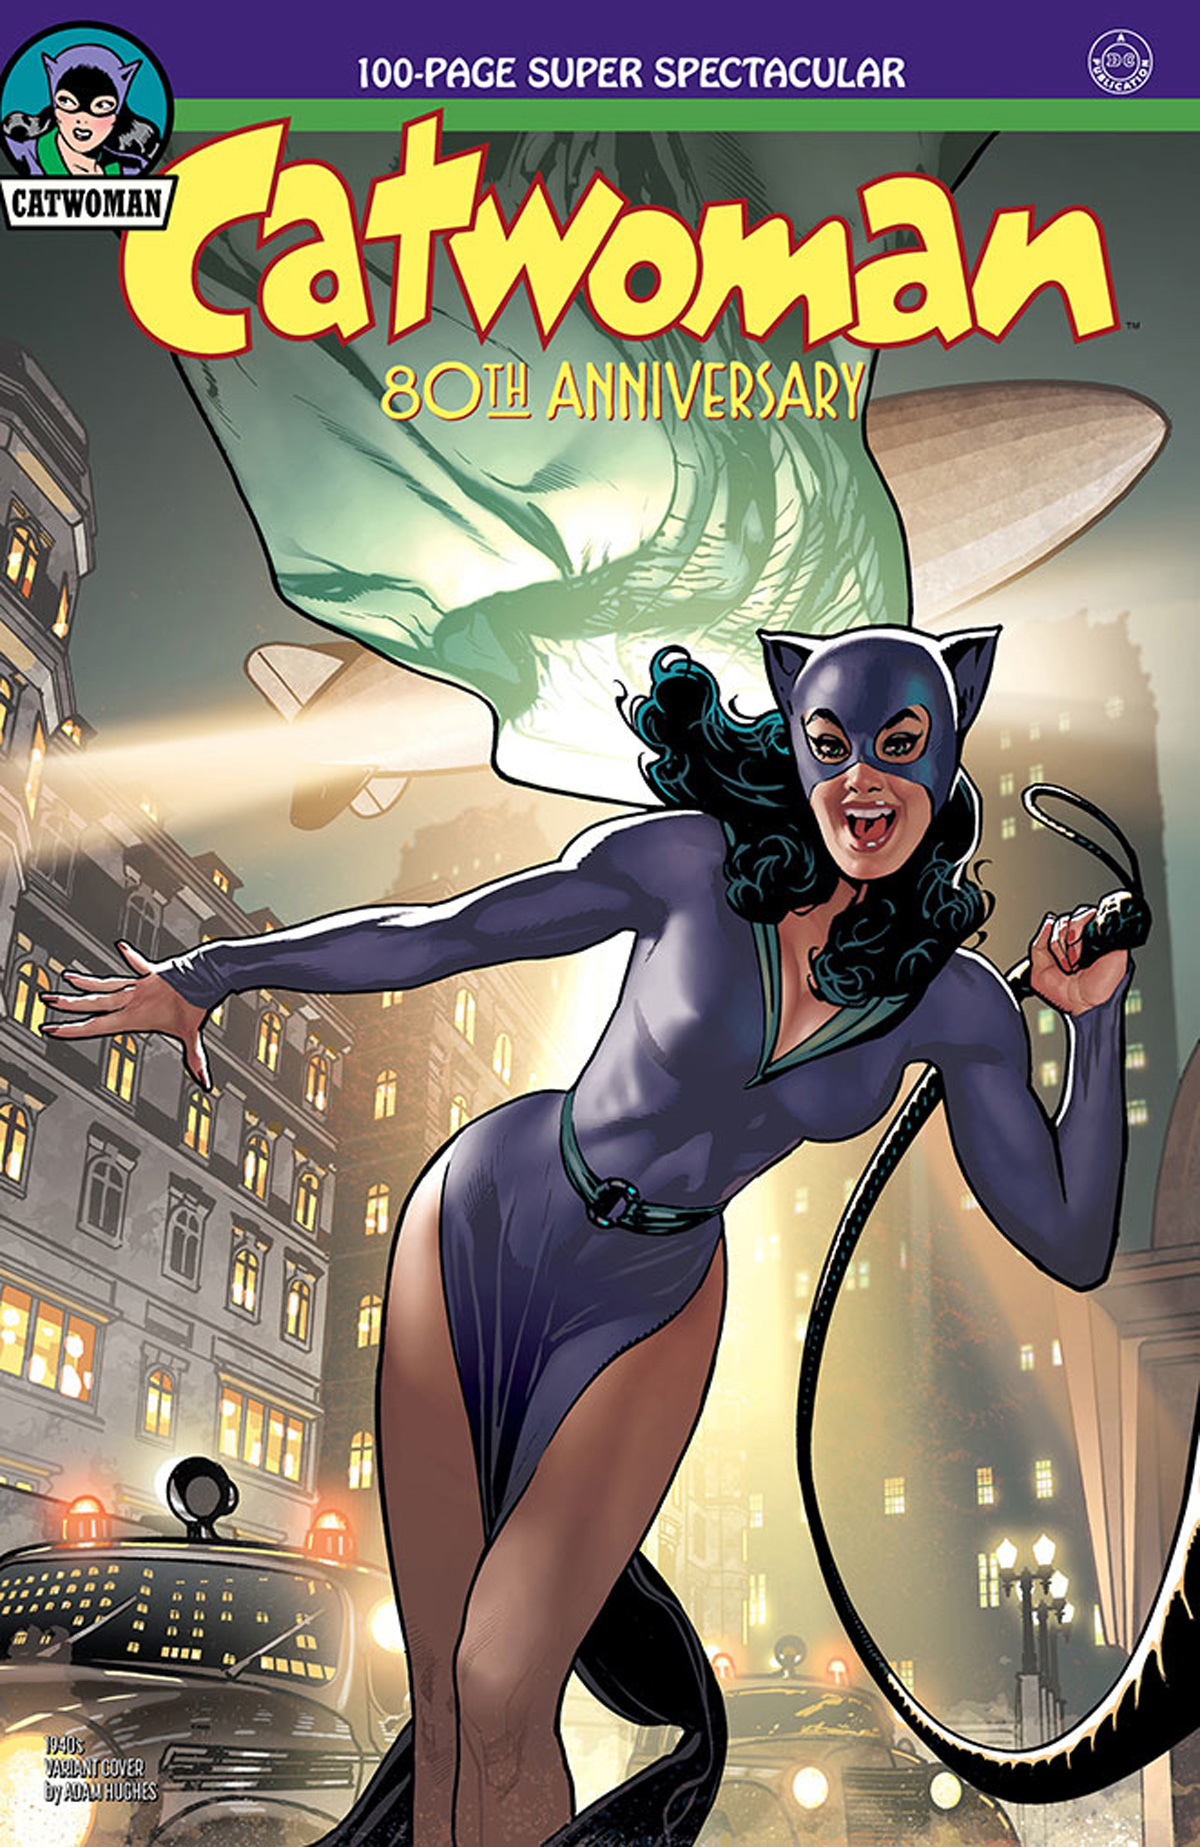 Catwoman 80th Anniversary 100-Page Super Spectacular #1 Cover B Variant Adam Hughes 1940s Cover